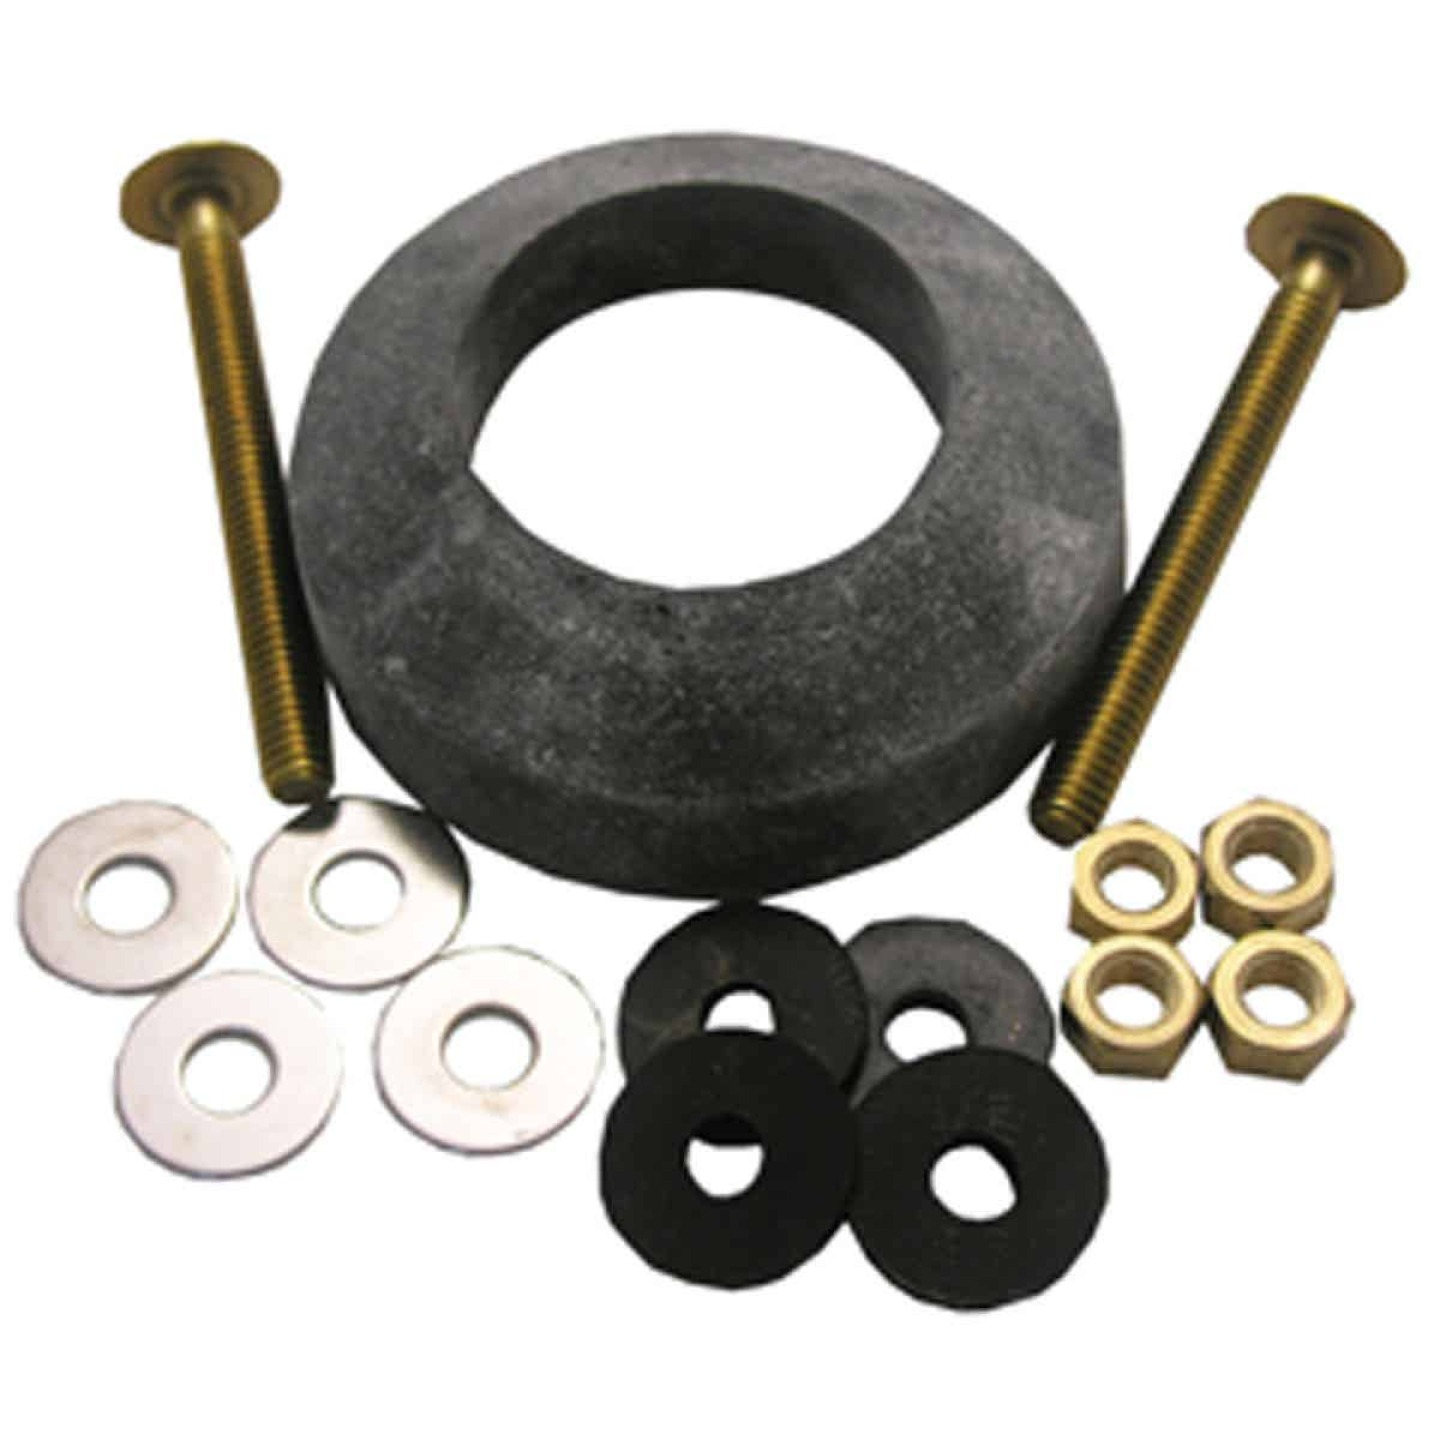 Lasco Toilet Tank To Bowl Bolt Kit with Recessed Gasket  Image 1